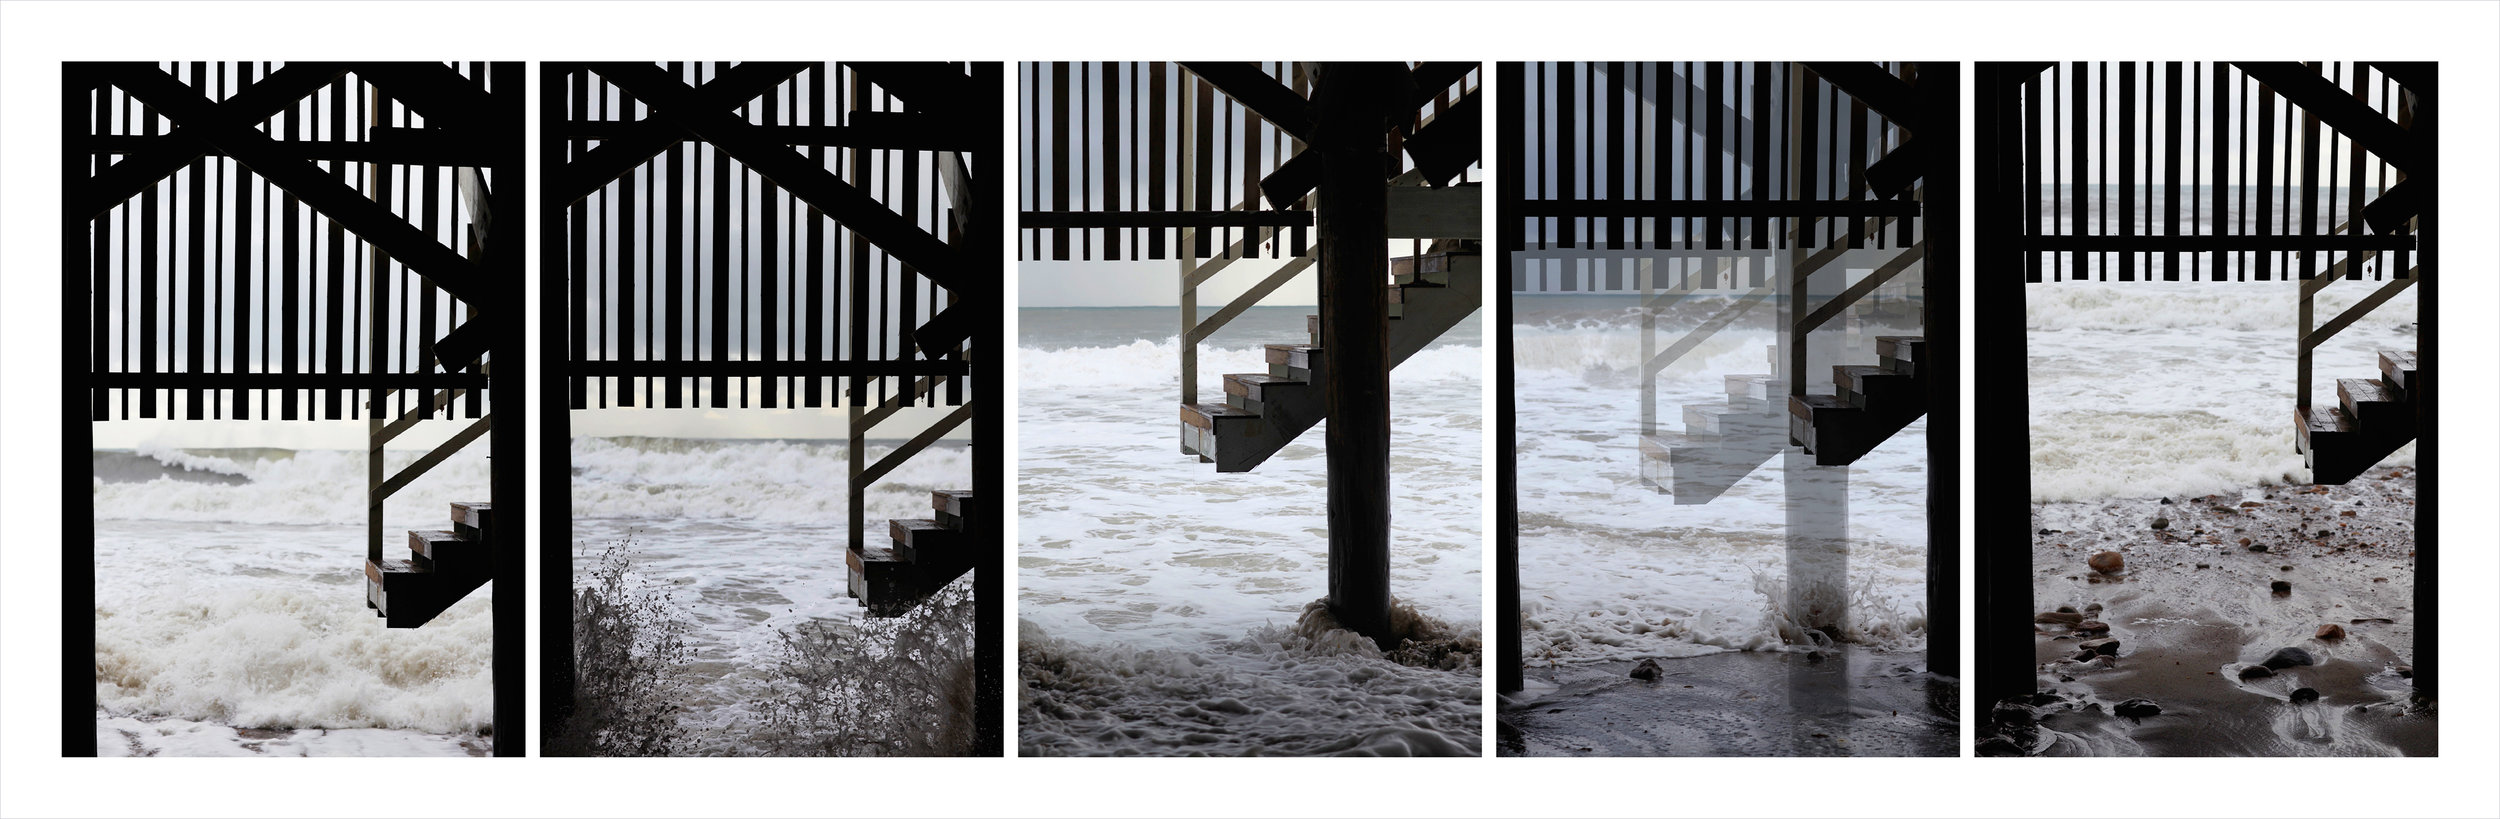 Untitled #33   (Nowhere)  , 2012/ archival pigment   print, 14  x 43 inches  ,  edition of 3 plus 2 AP